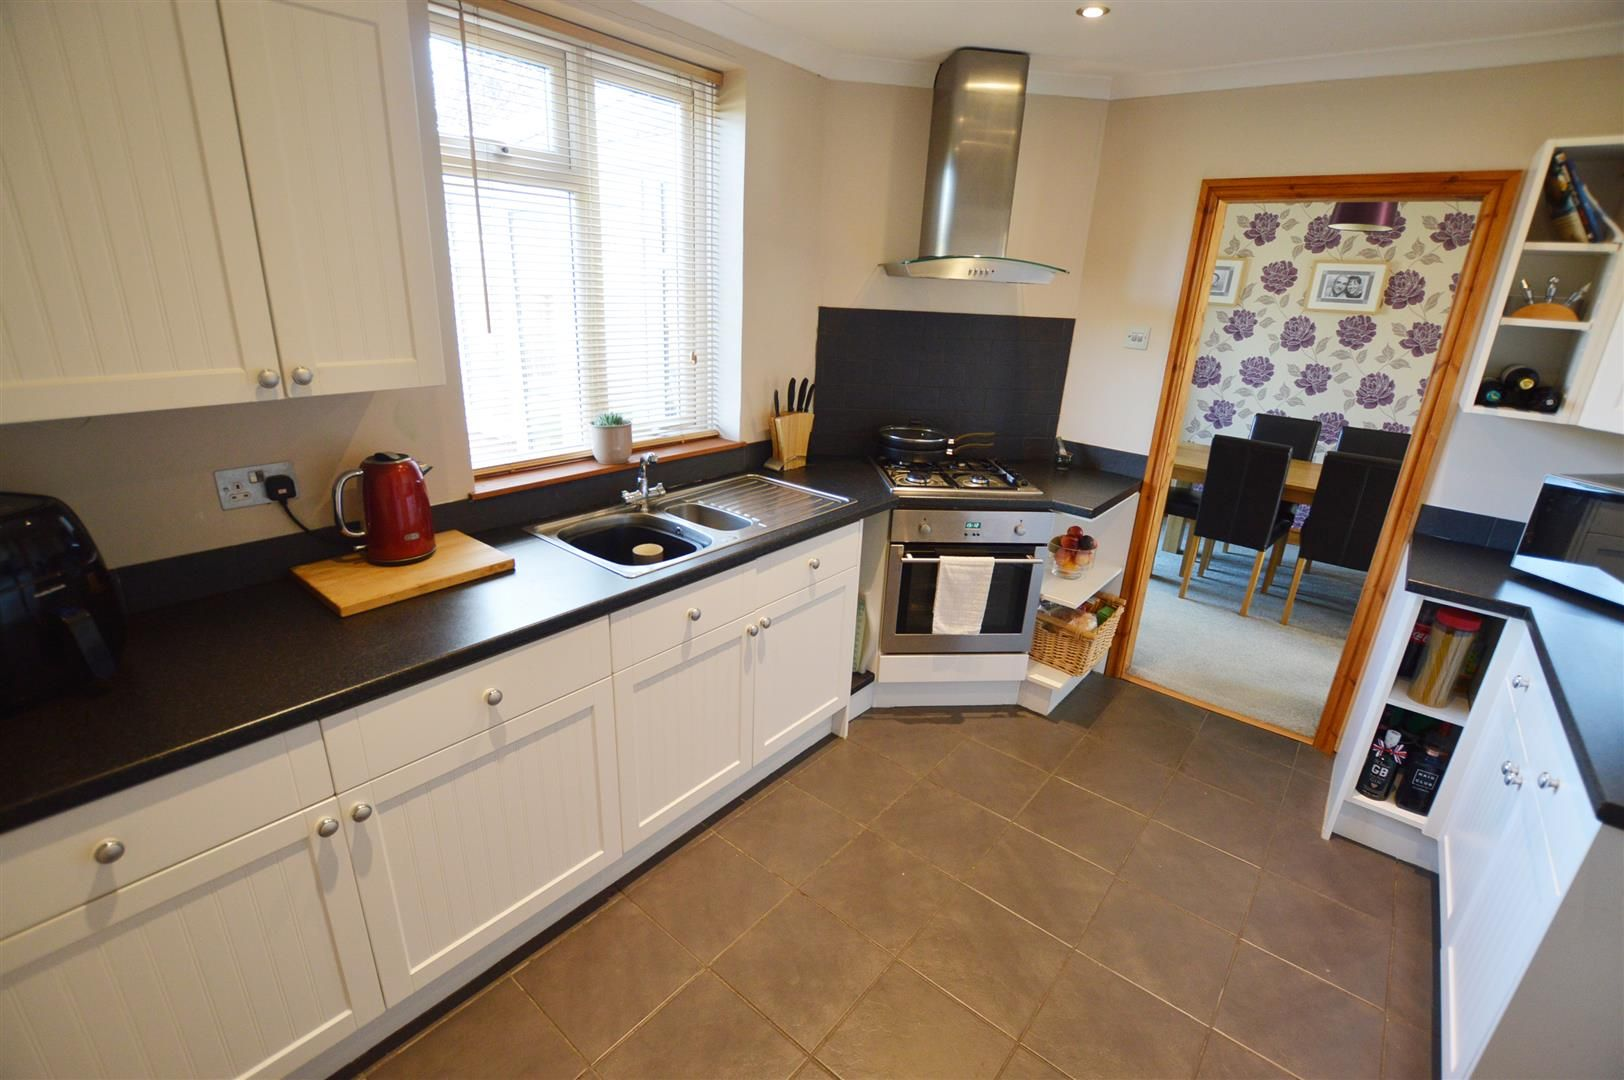 4 bed semi-detached for sale in Hereford 4